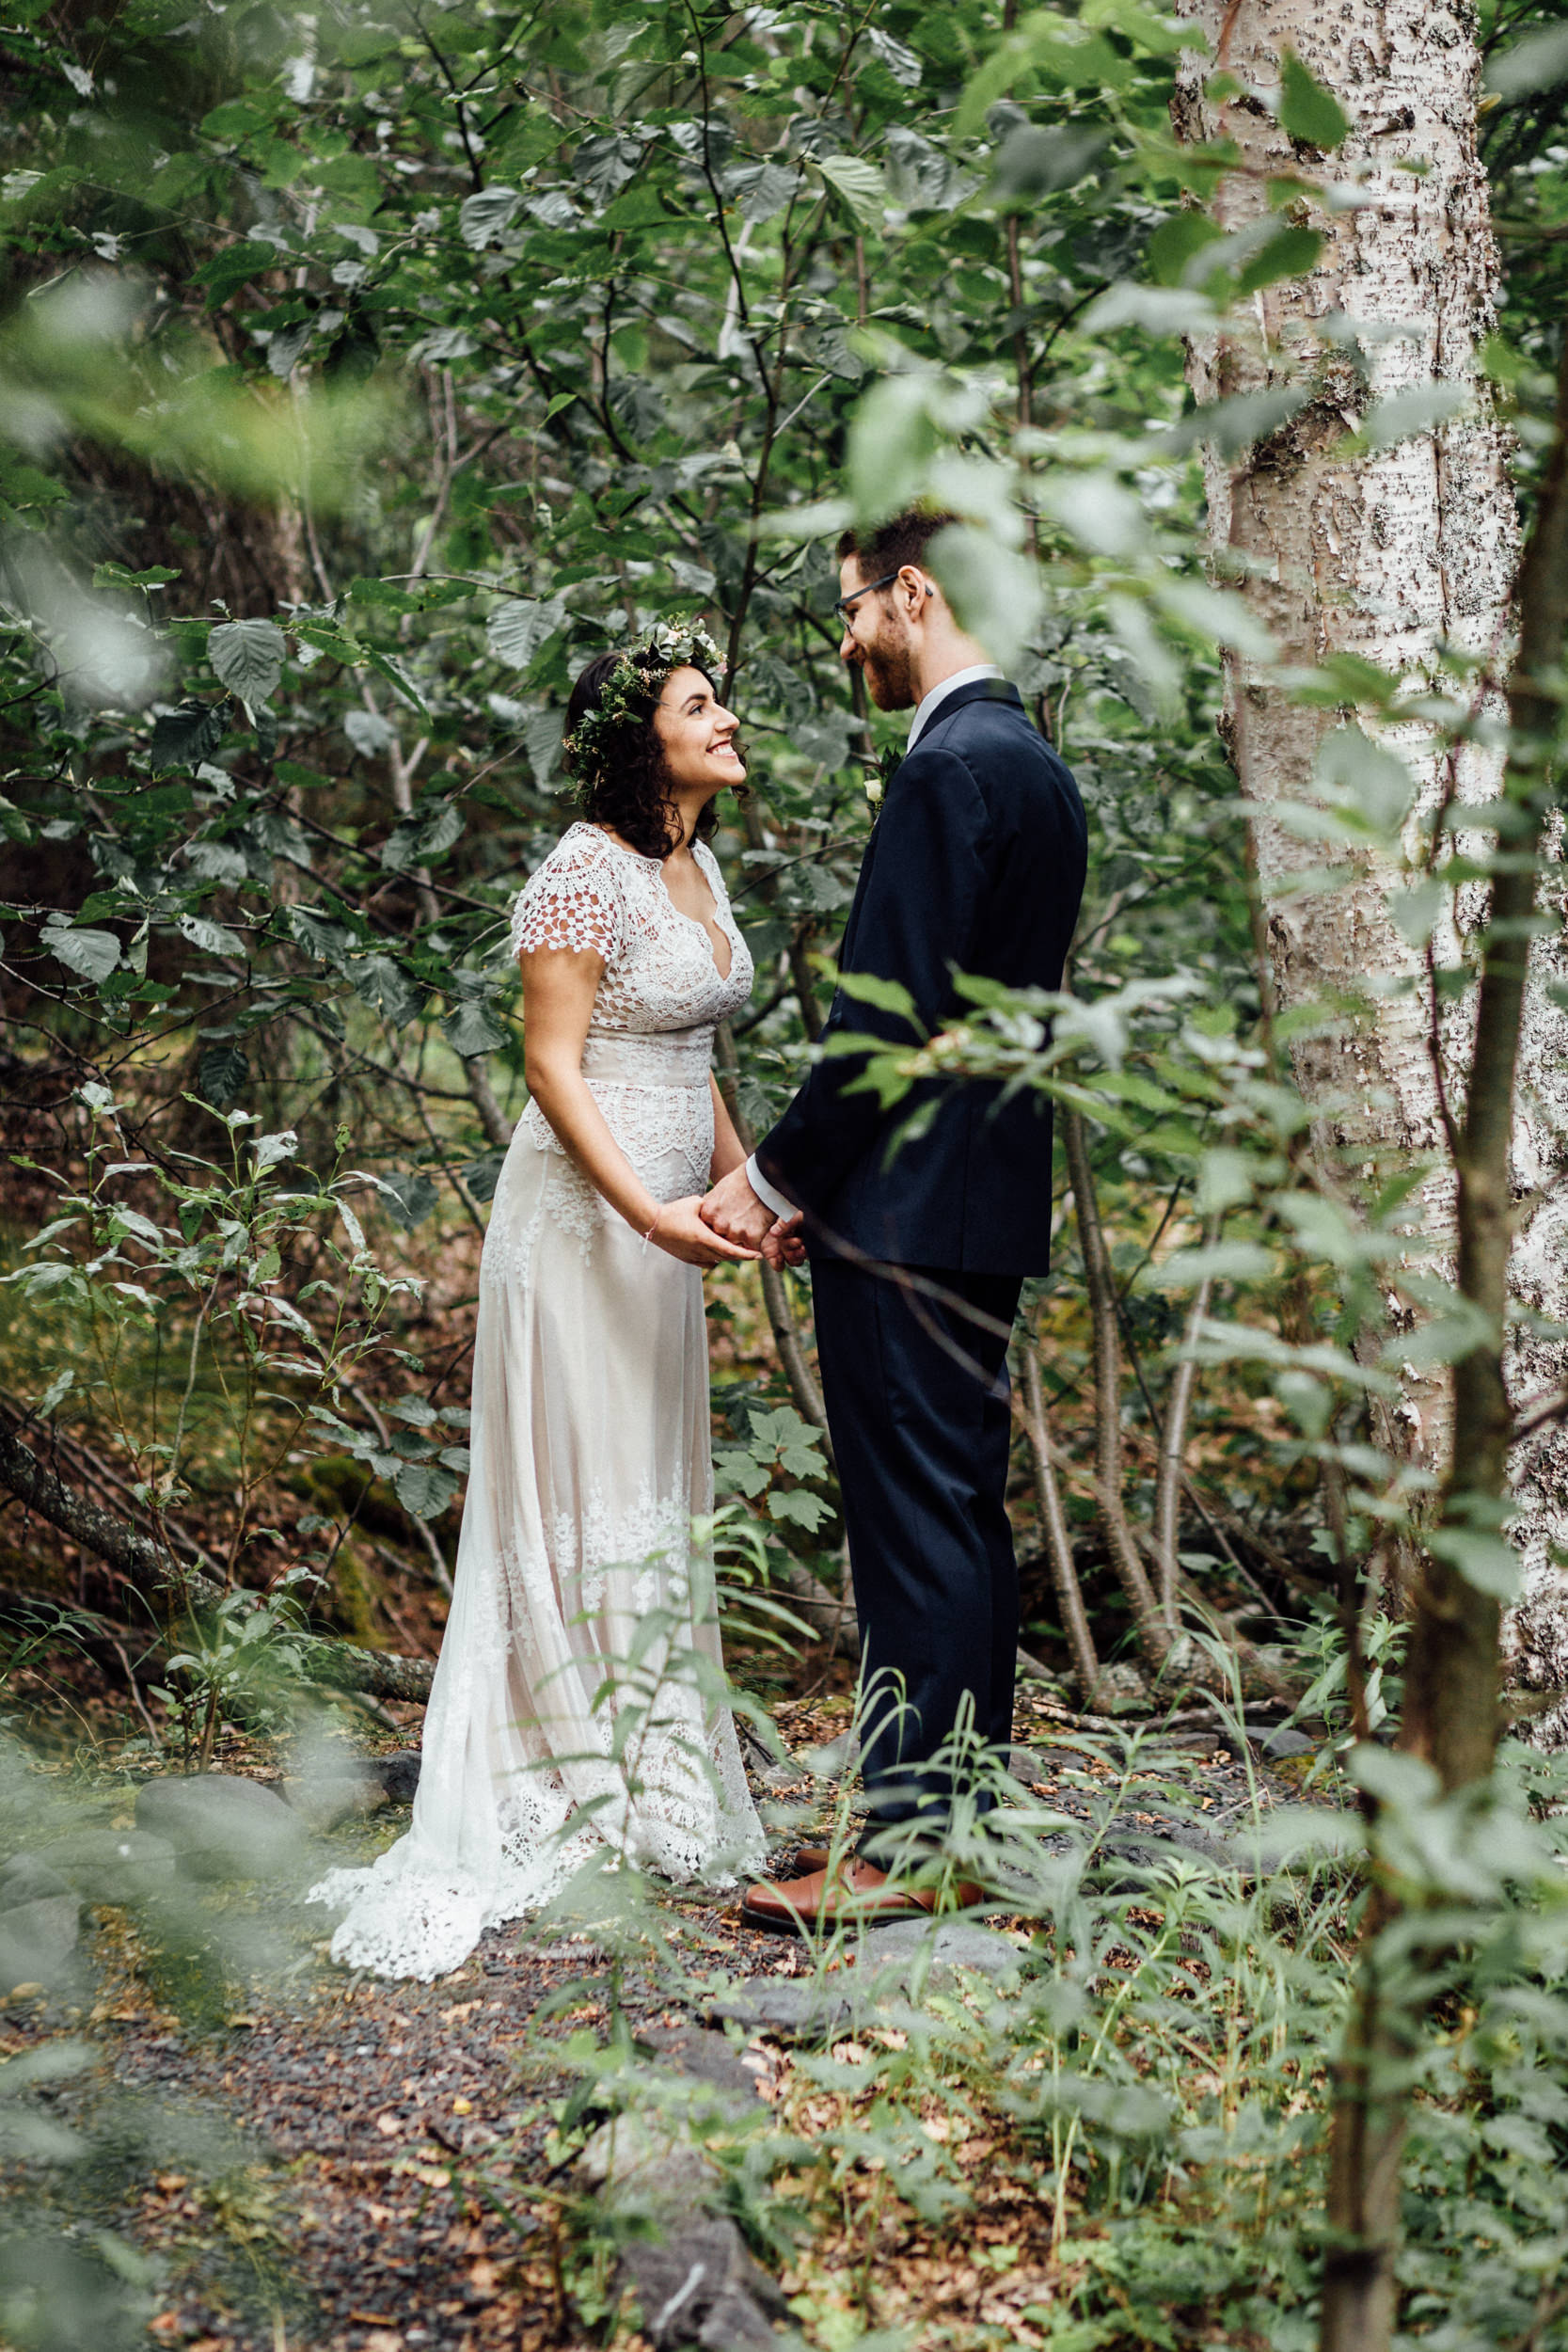 Sweet moment between couple in Cooper Landing forest